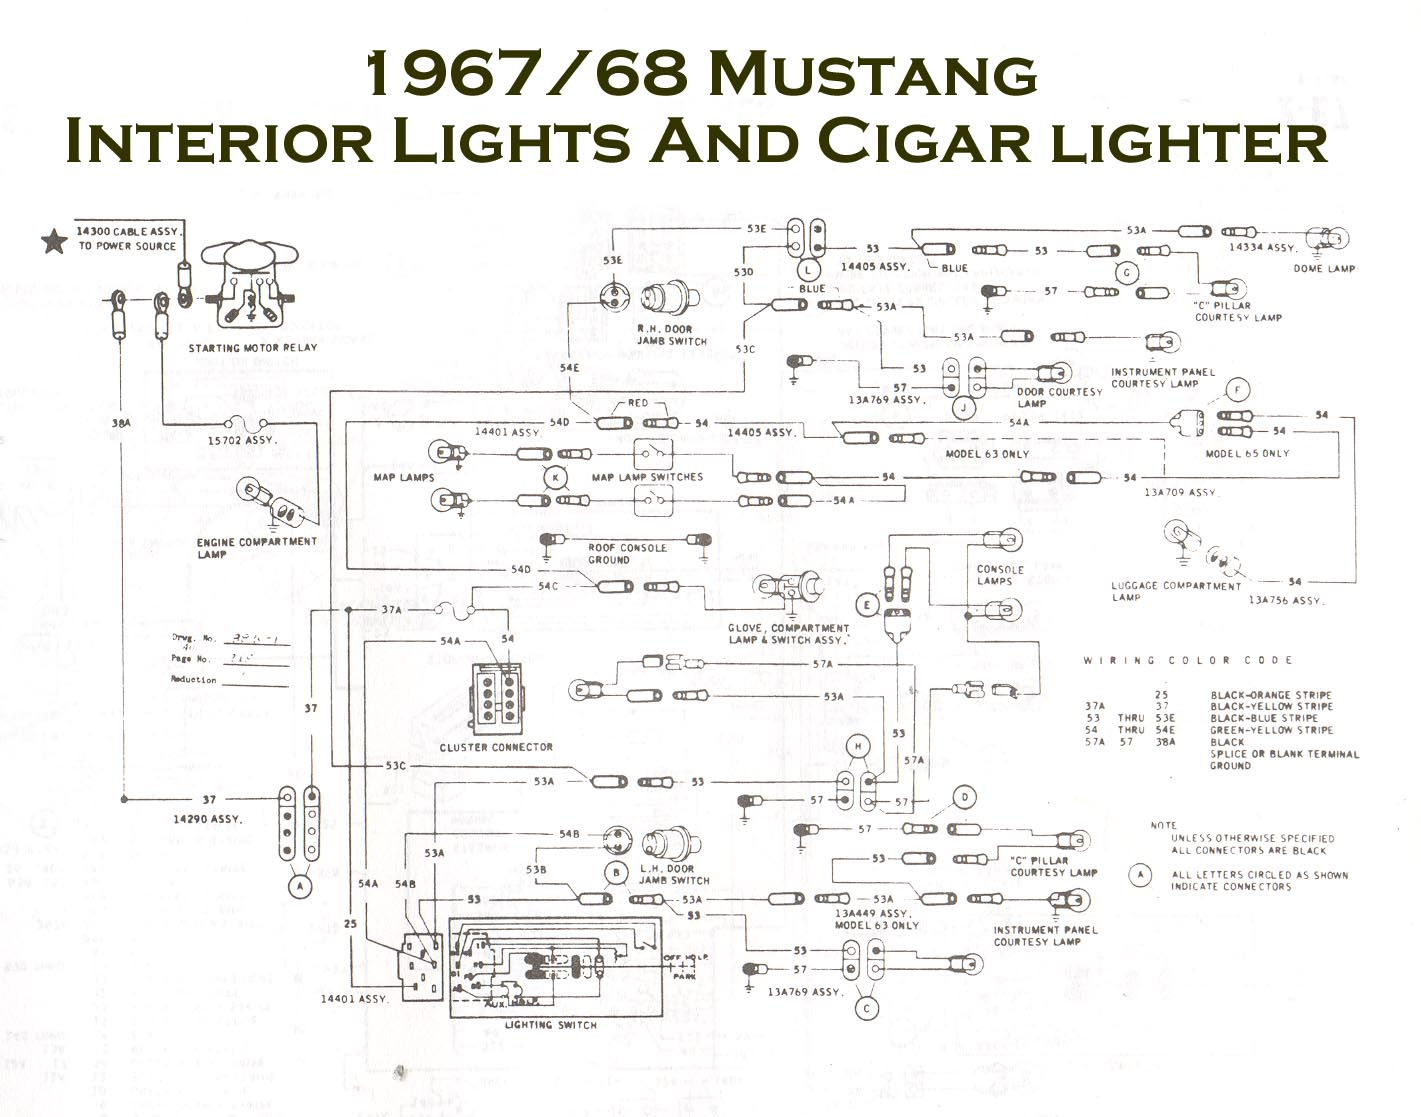 1967 Ford Mustang Stereo Wiring Diagram Just Data 1985 Volvo Radio Wire Vintage Diagrams 1988 68 Console